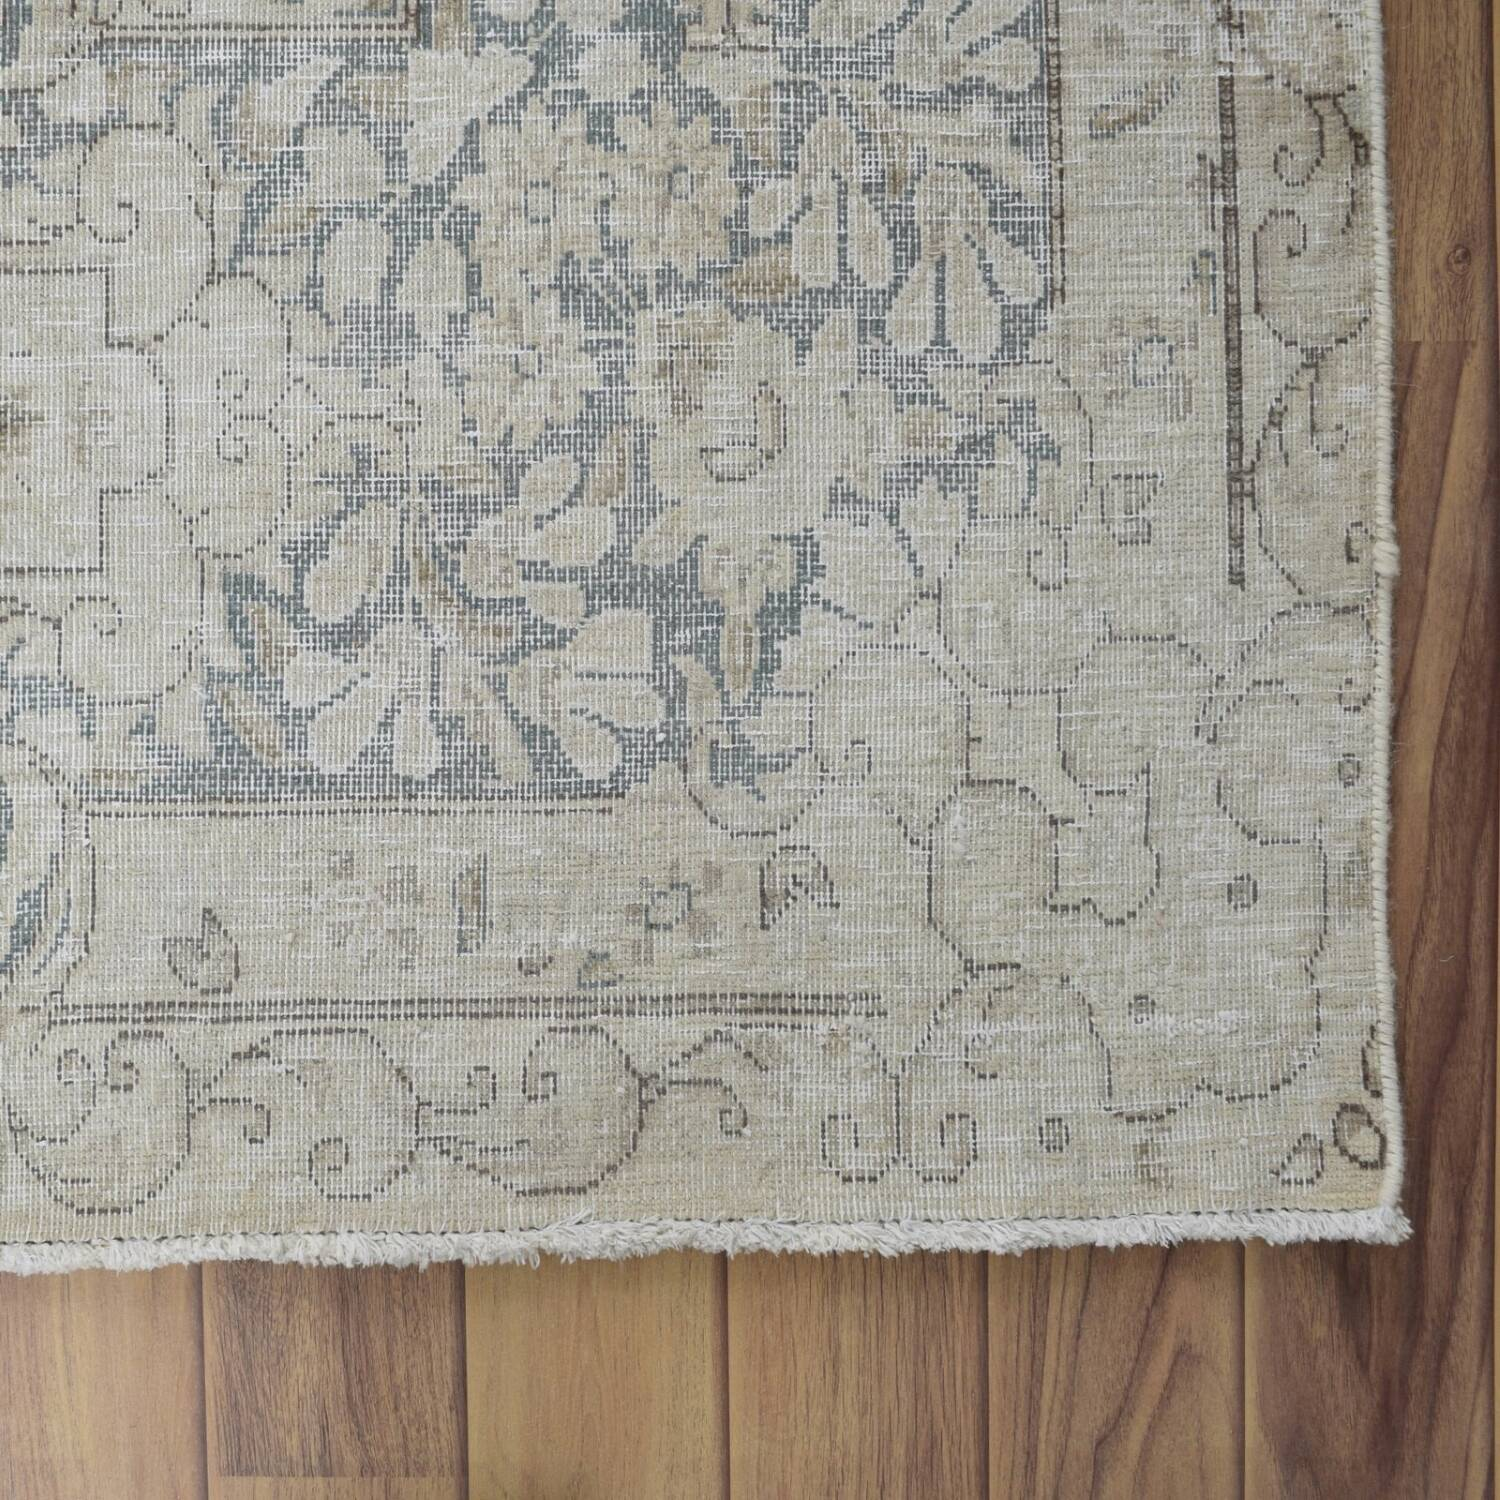 Antique Distressed Floral Kerman Persian Muted Area Rug 10x13 image 5